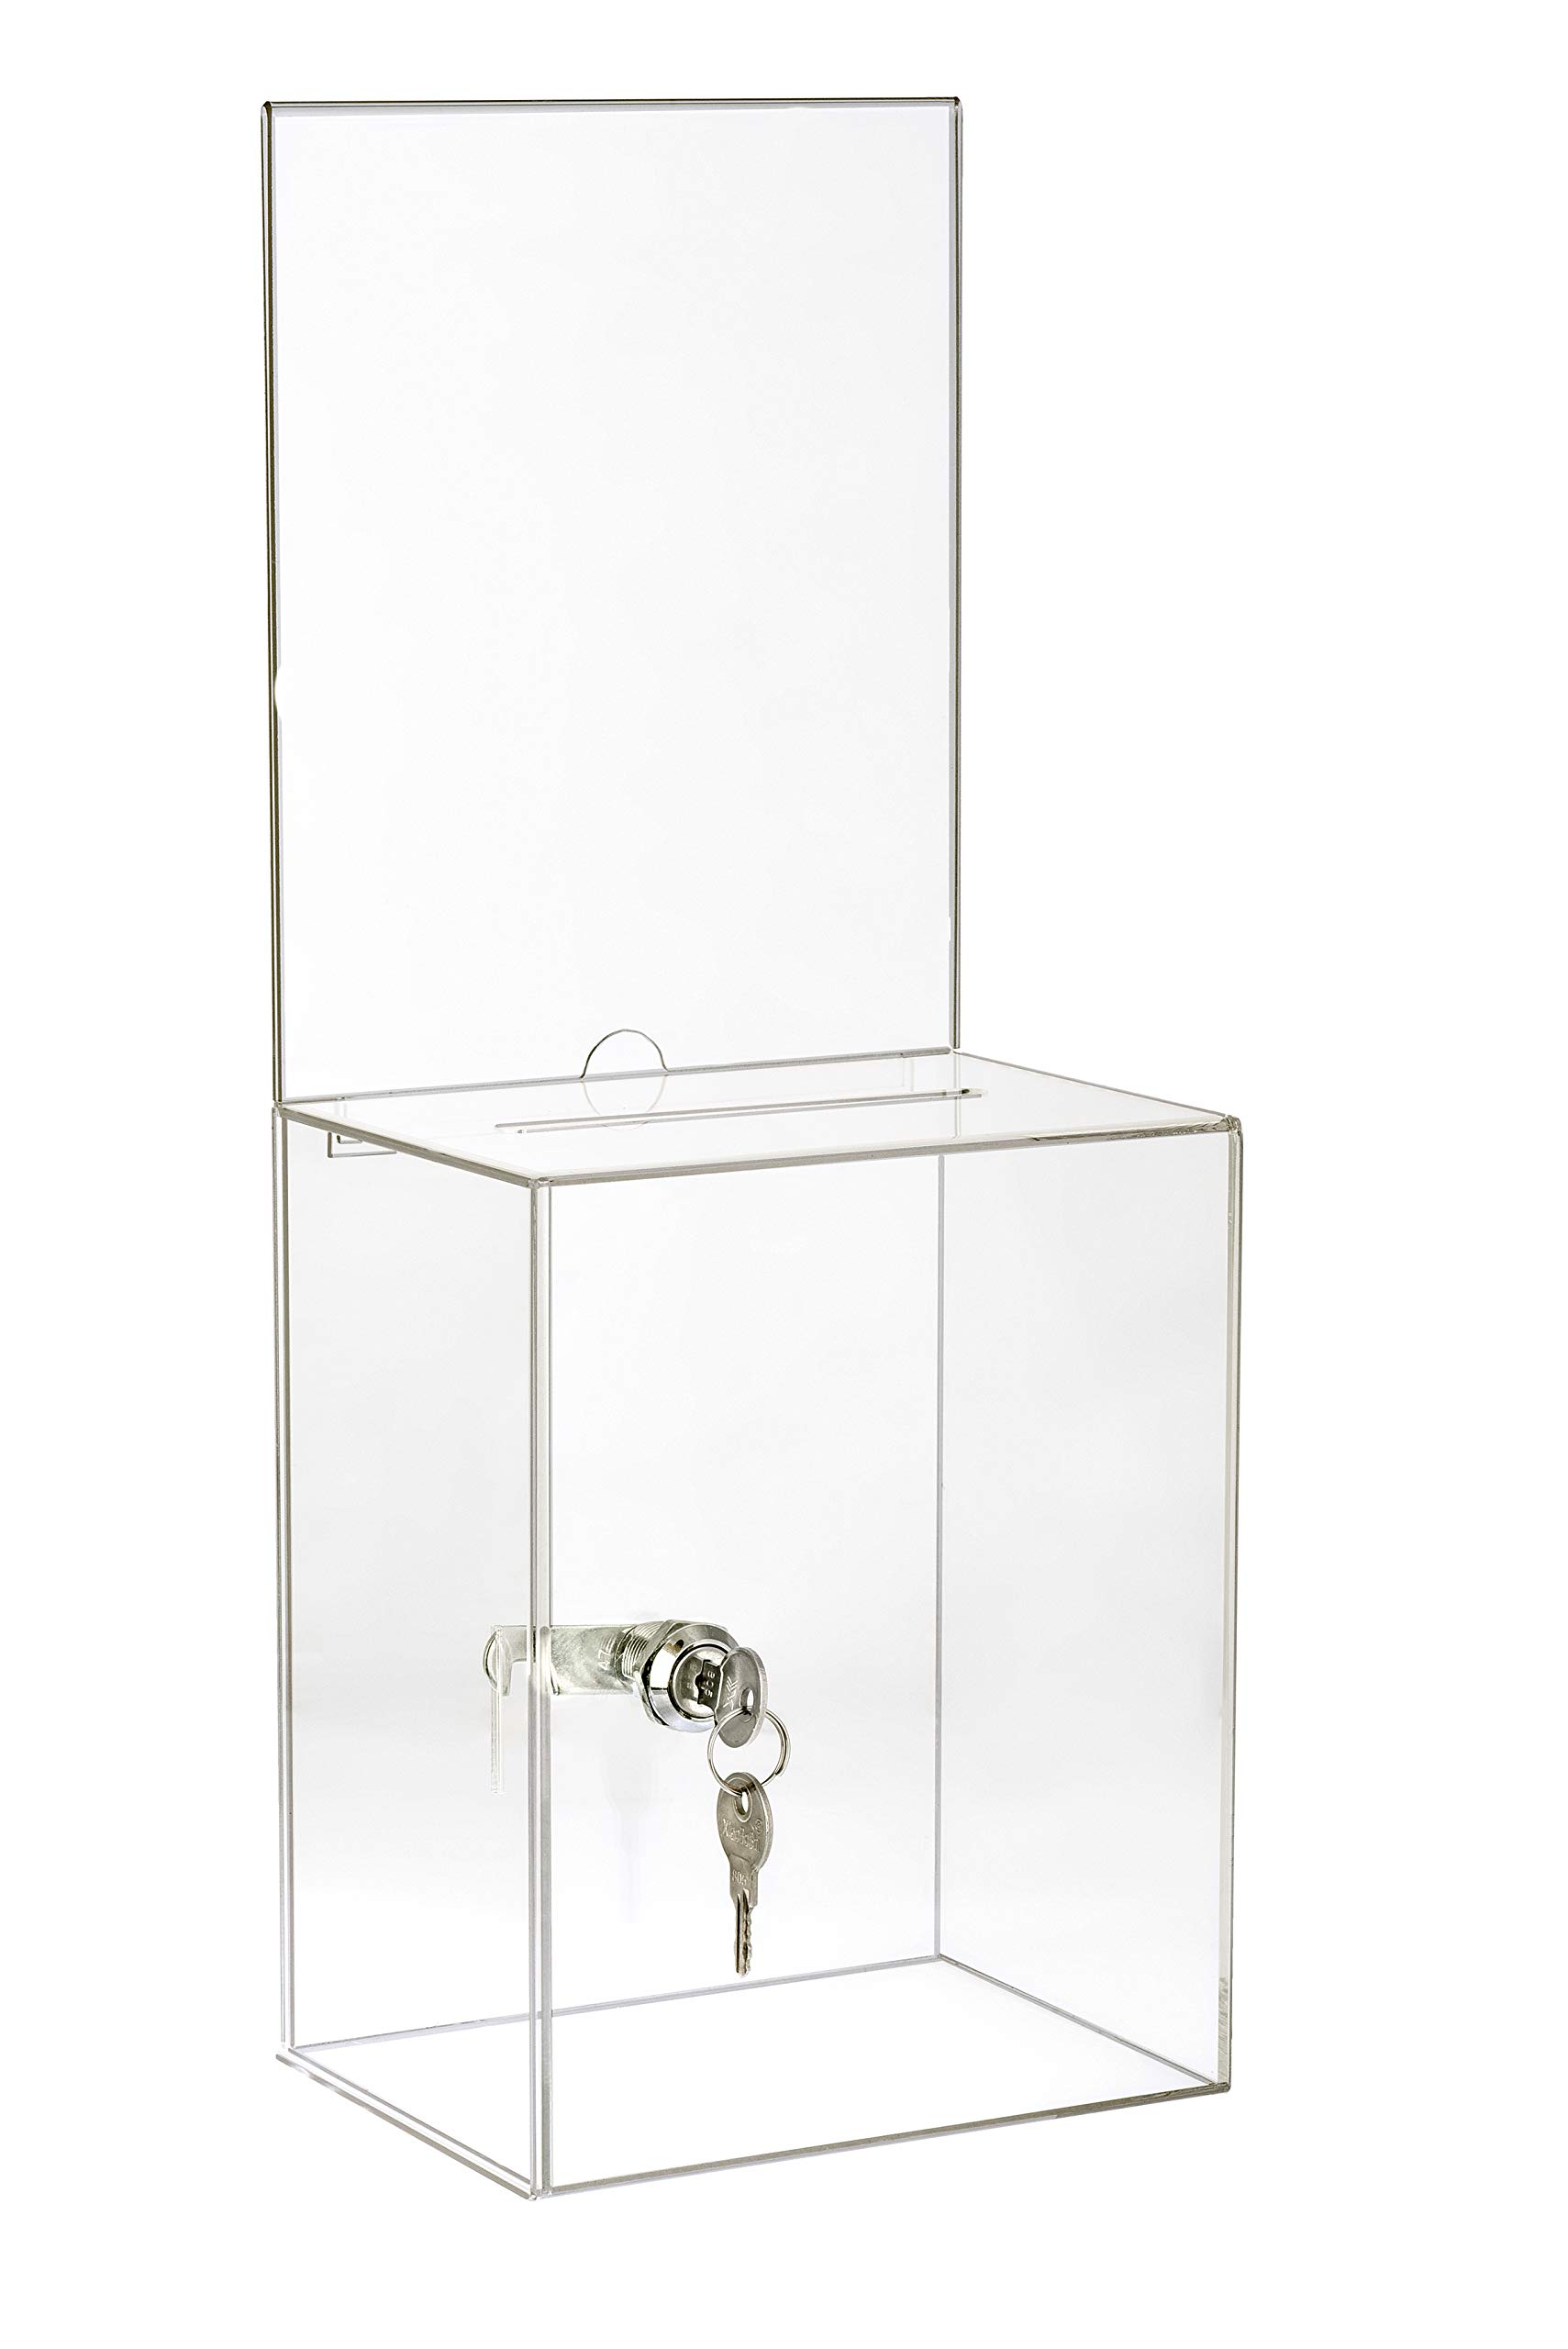 AdirOffice Tall Acrylic Suggestion/Donation Box - Wall Mountable Plastic Comments/Ballot Box w/Safety Lock for Cash, Suggestions & Employee/Customer Comment Cards (Clear) by AdirOffice